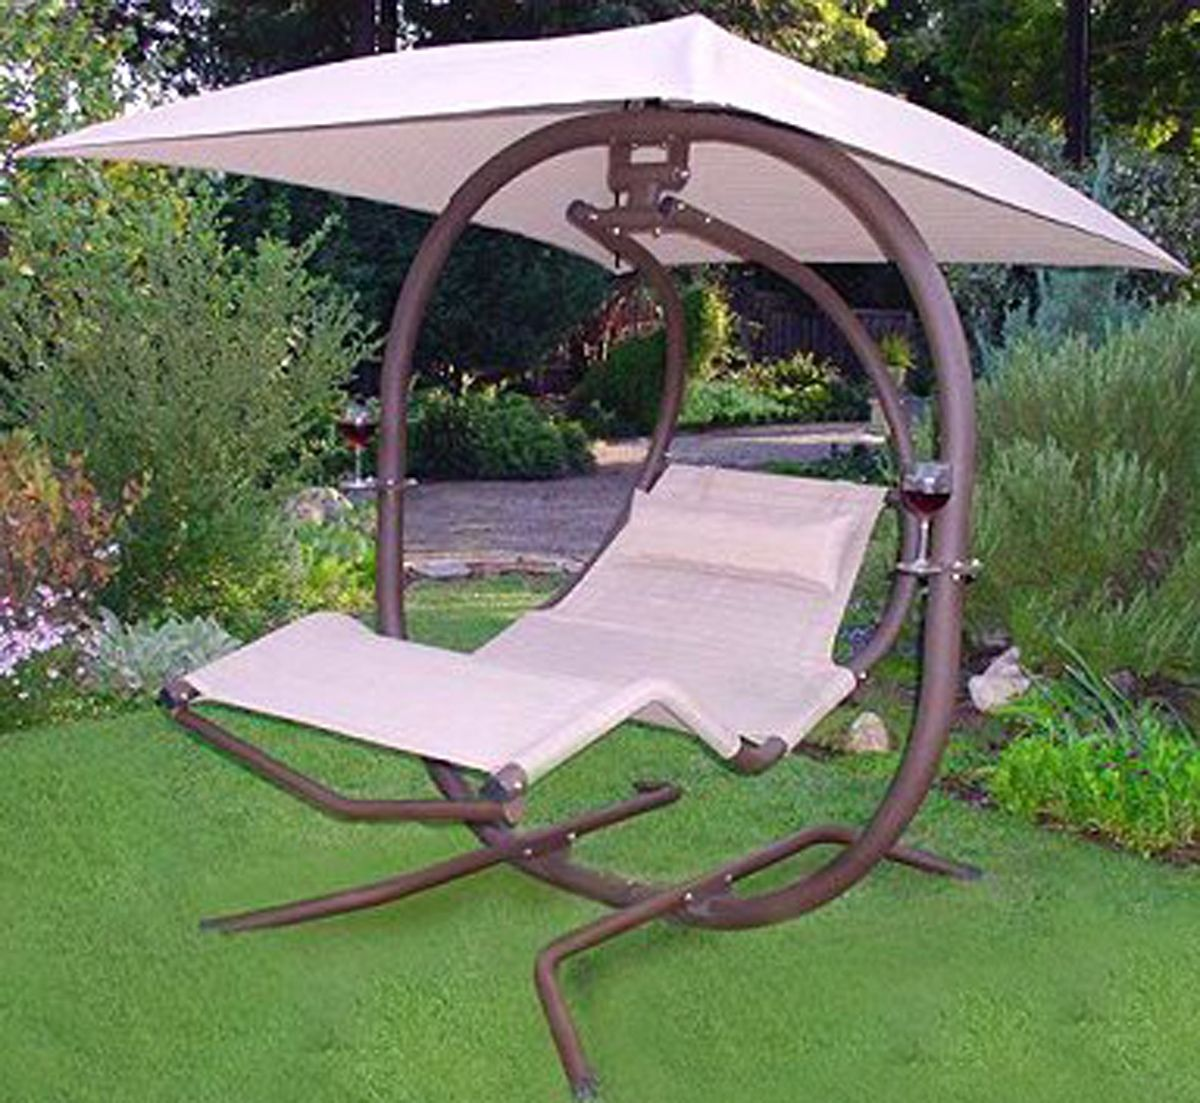 This Swing So Comfy Next Home Will Have